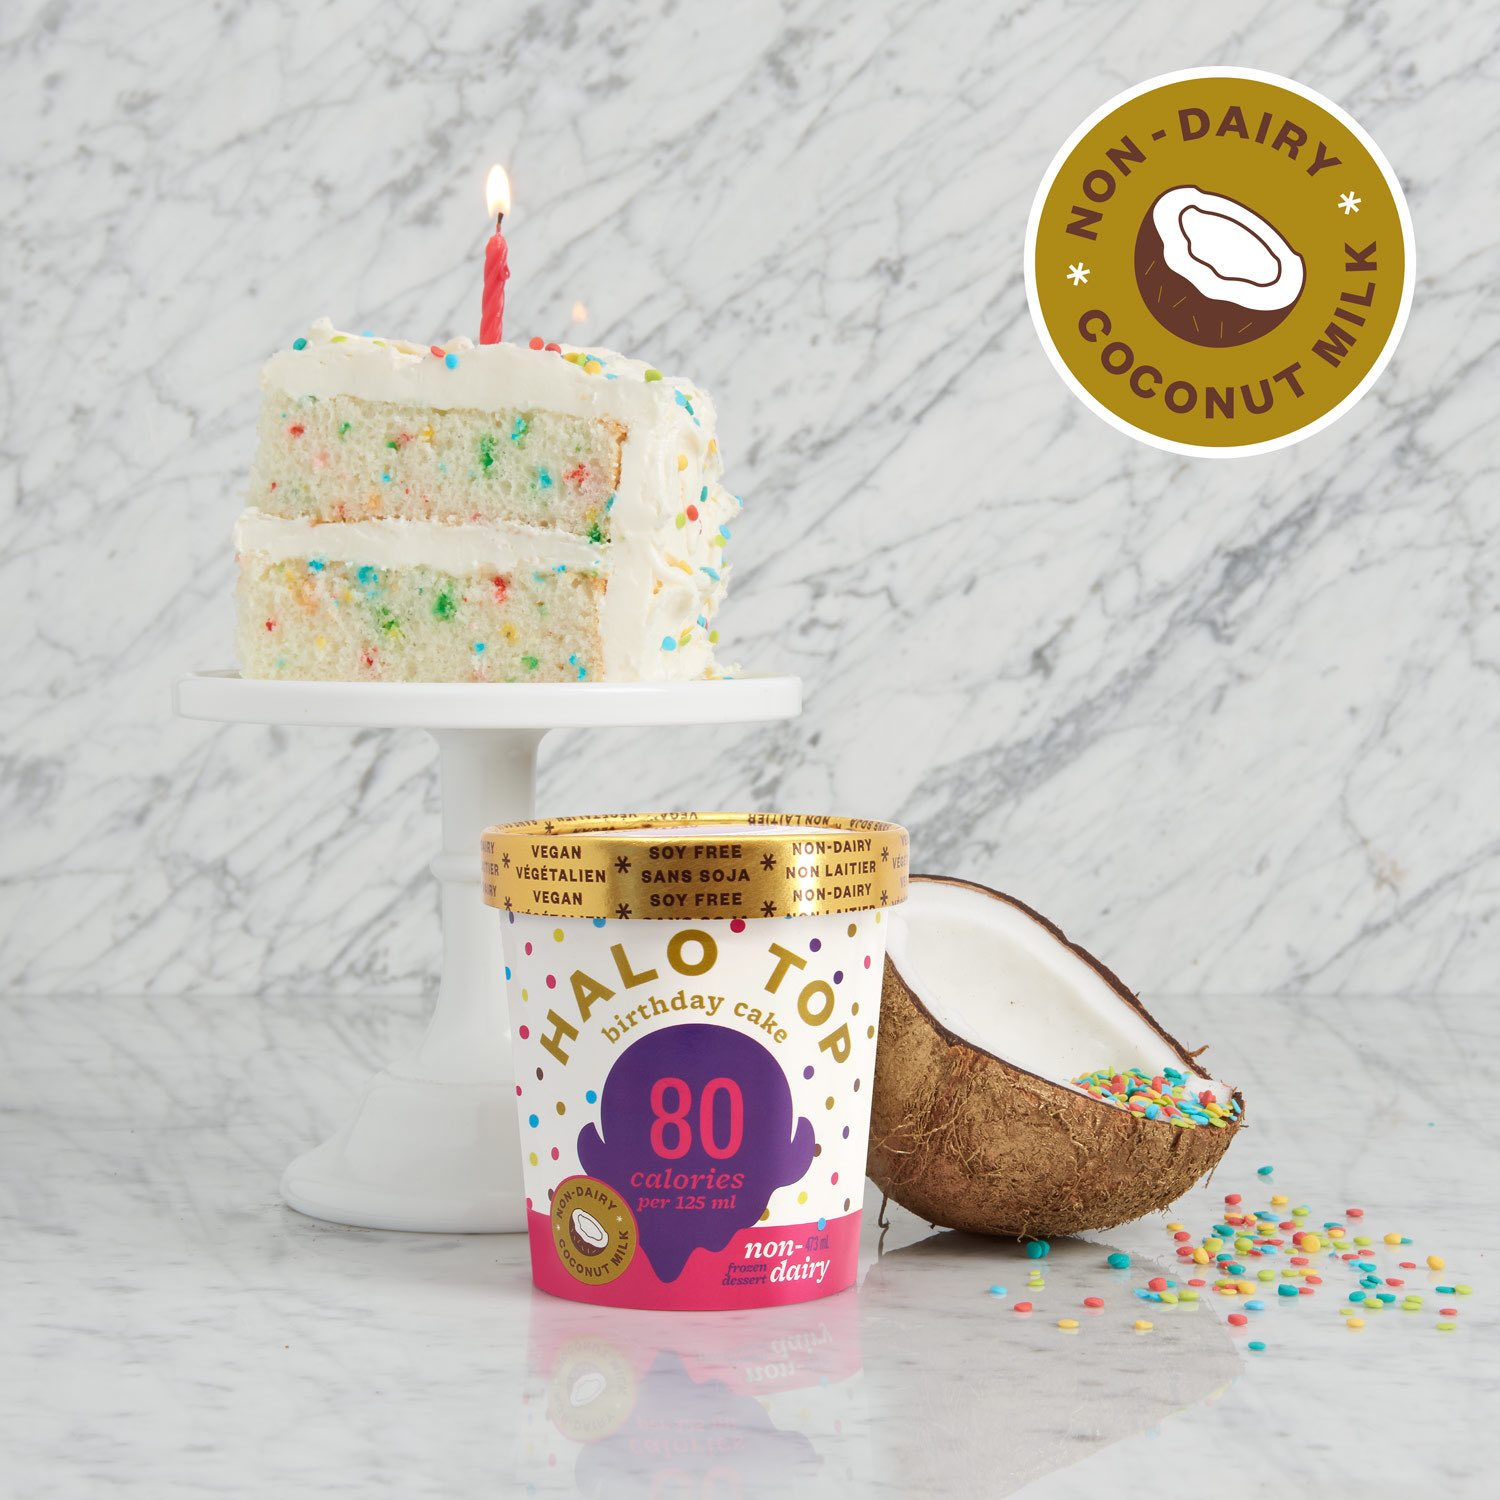 Cool Halo Top Canada On Twitter Now You Can Have Your Cake And Eat It Funny Birthday Cards Online Alyptdamsfinfo